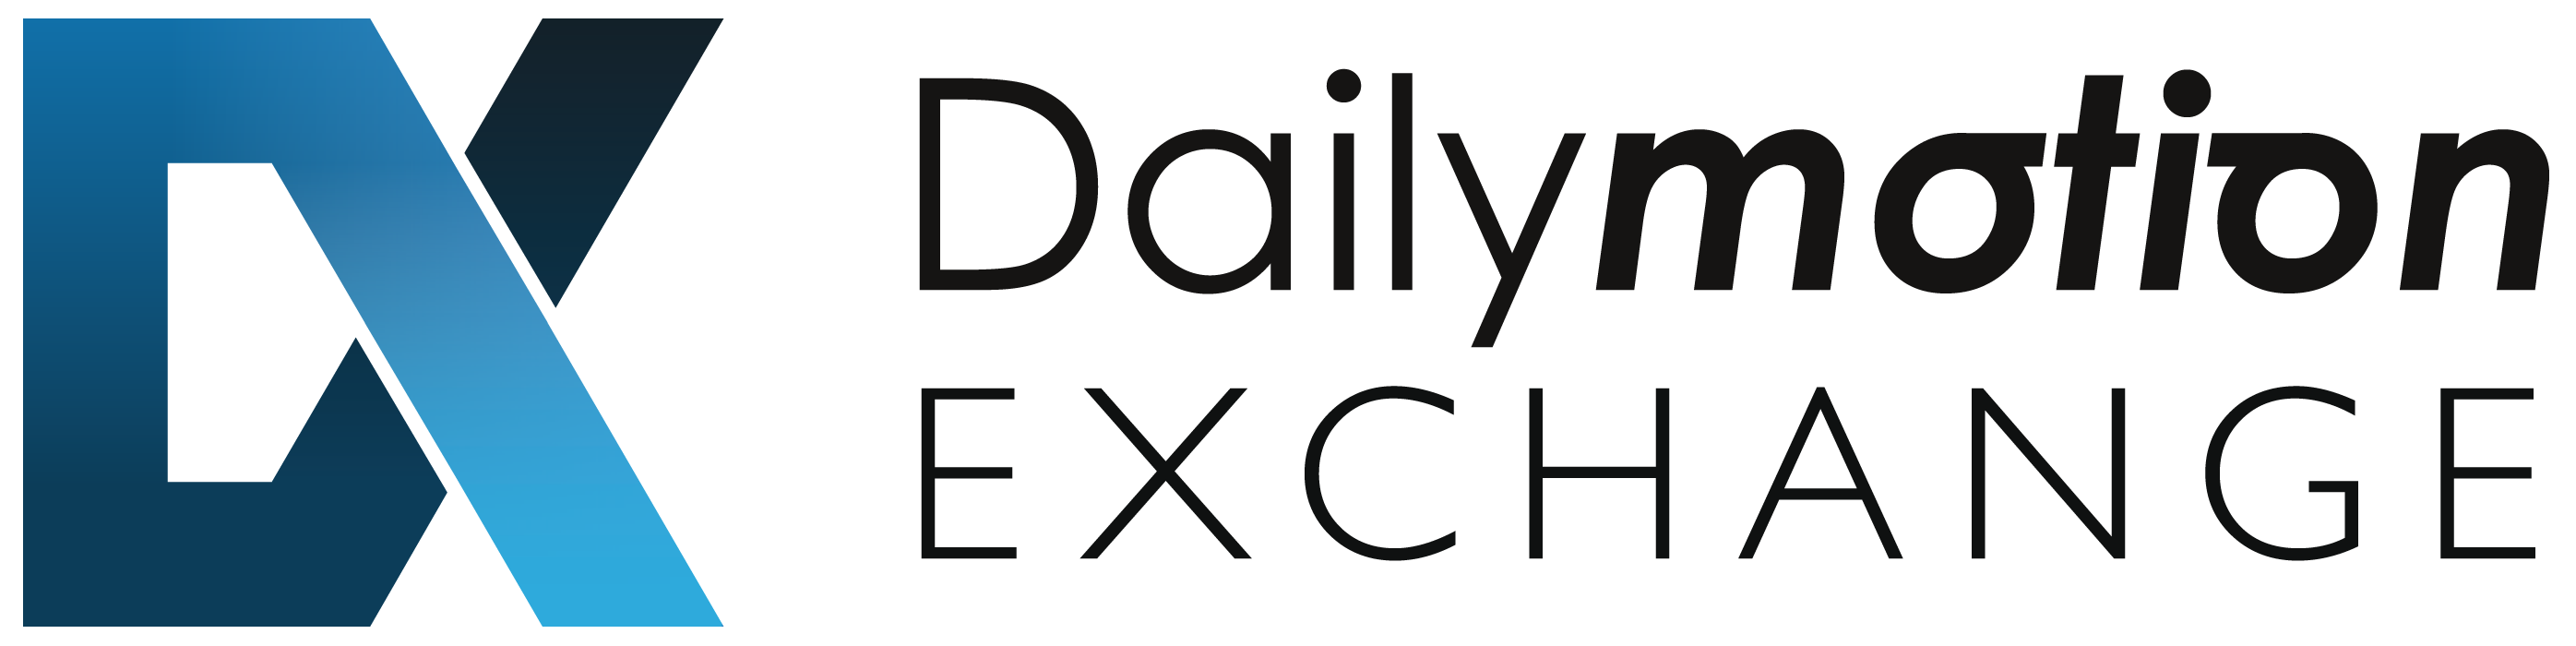 Dailymotion-Exchange-Horizontal white